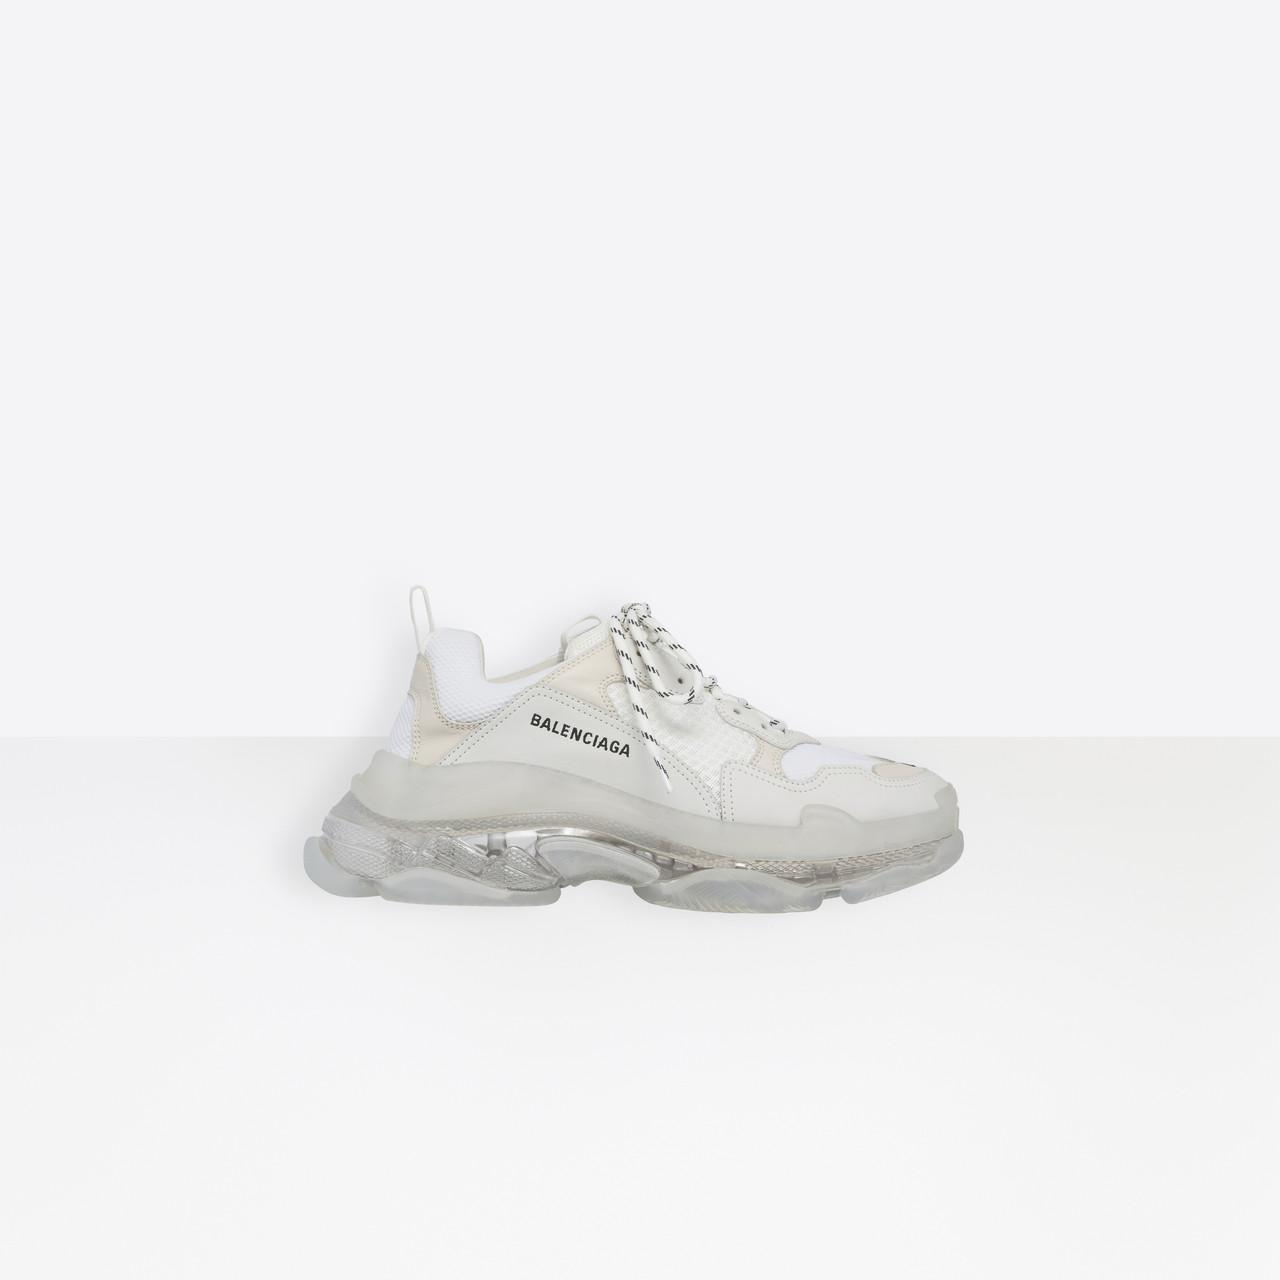 d39f92582f72 Balenciaga - White Triple S Clear Sole Trainers for Men - Lyst. View  fullscreen